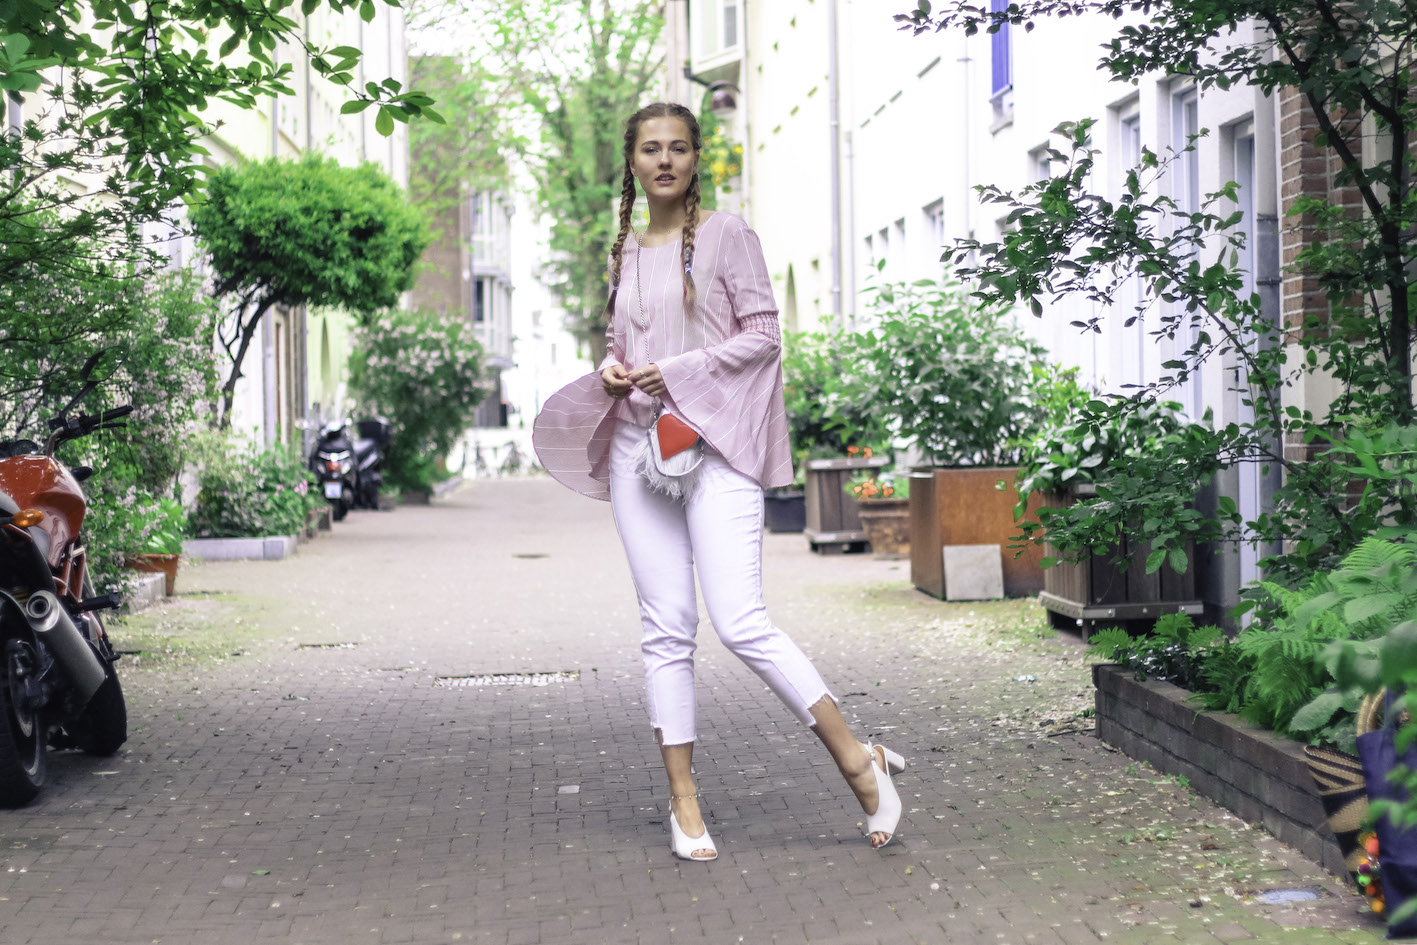 Floortjeloves, weekend, 10 tips for the best weekend, tips for the best weekend, mint&berry, 2nd one, 2nd one jeans, Mint & Berry, Rosegal, slingback, white jeans, boxer braids, flared sleeves